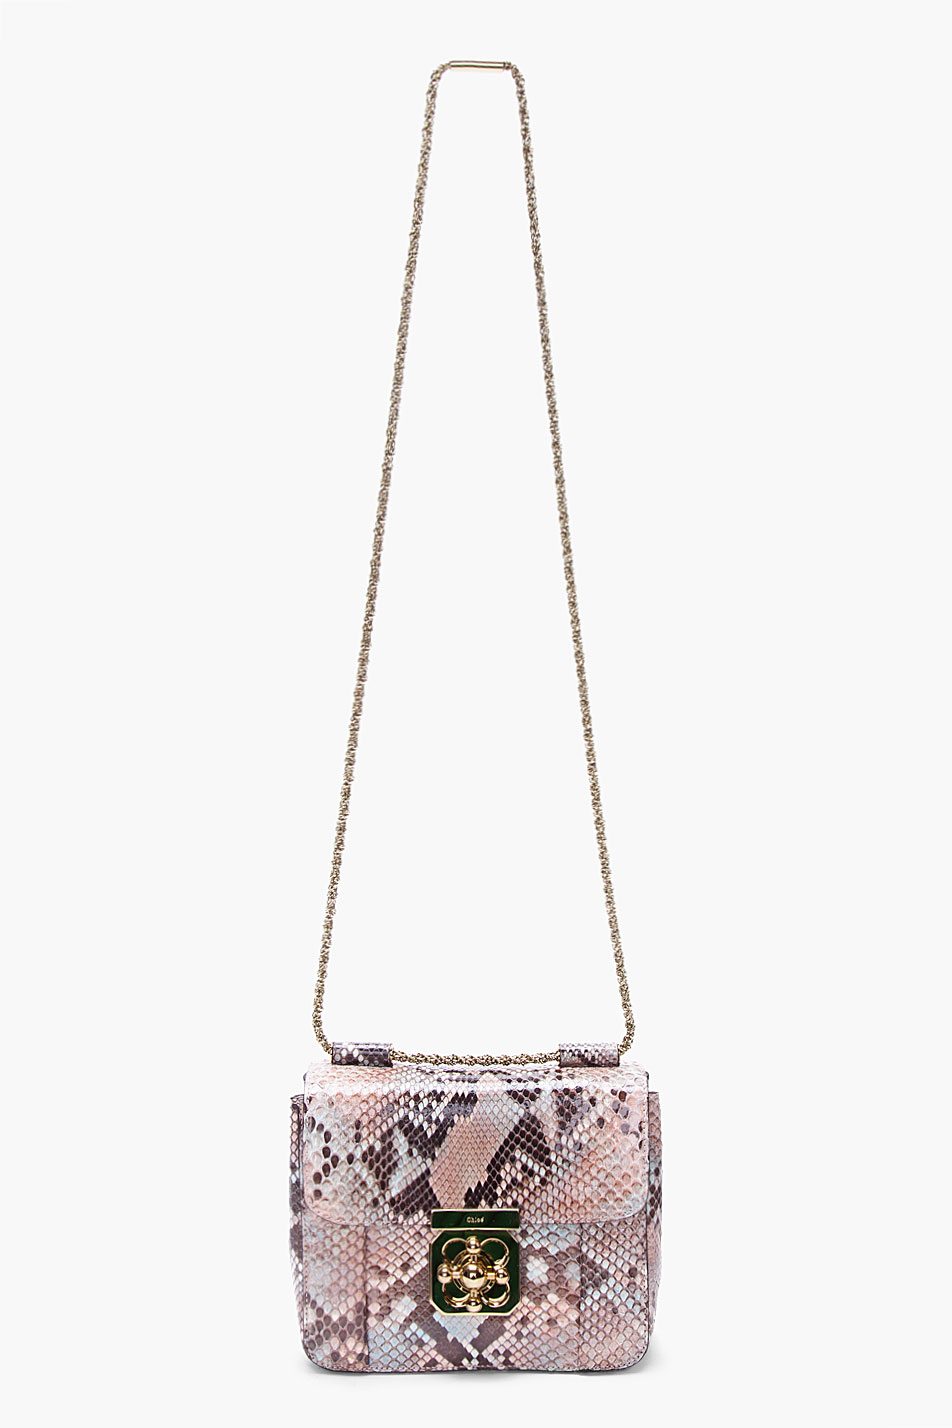 Chlo¨¦ Python Skin Elsie Evening Bag in Animal (taupe) | Lyst